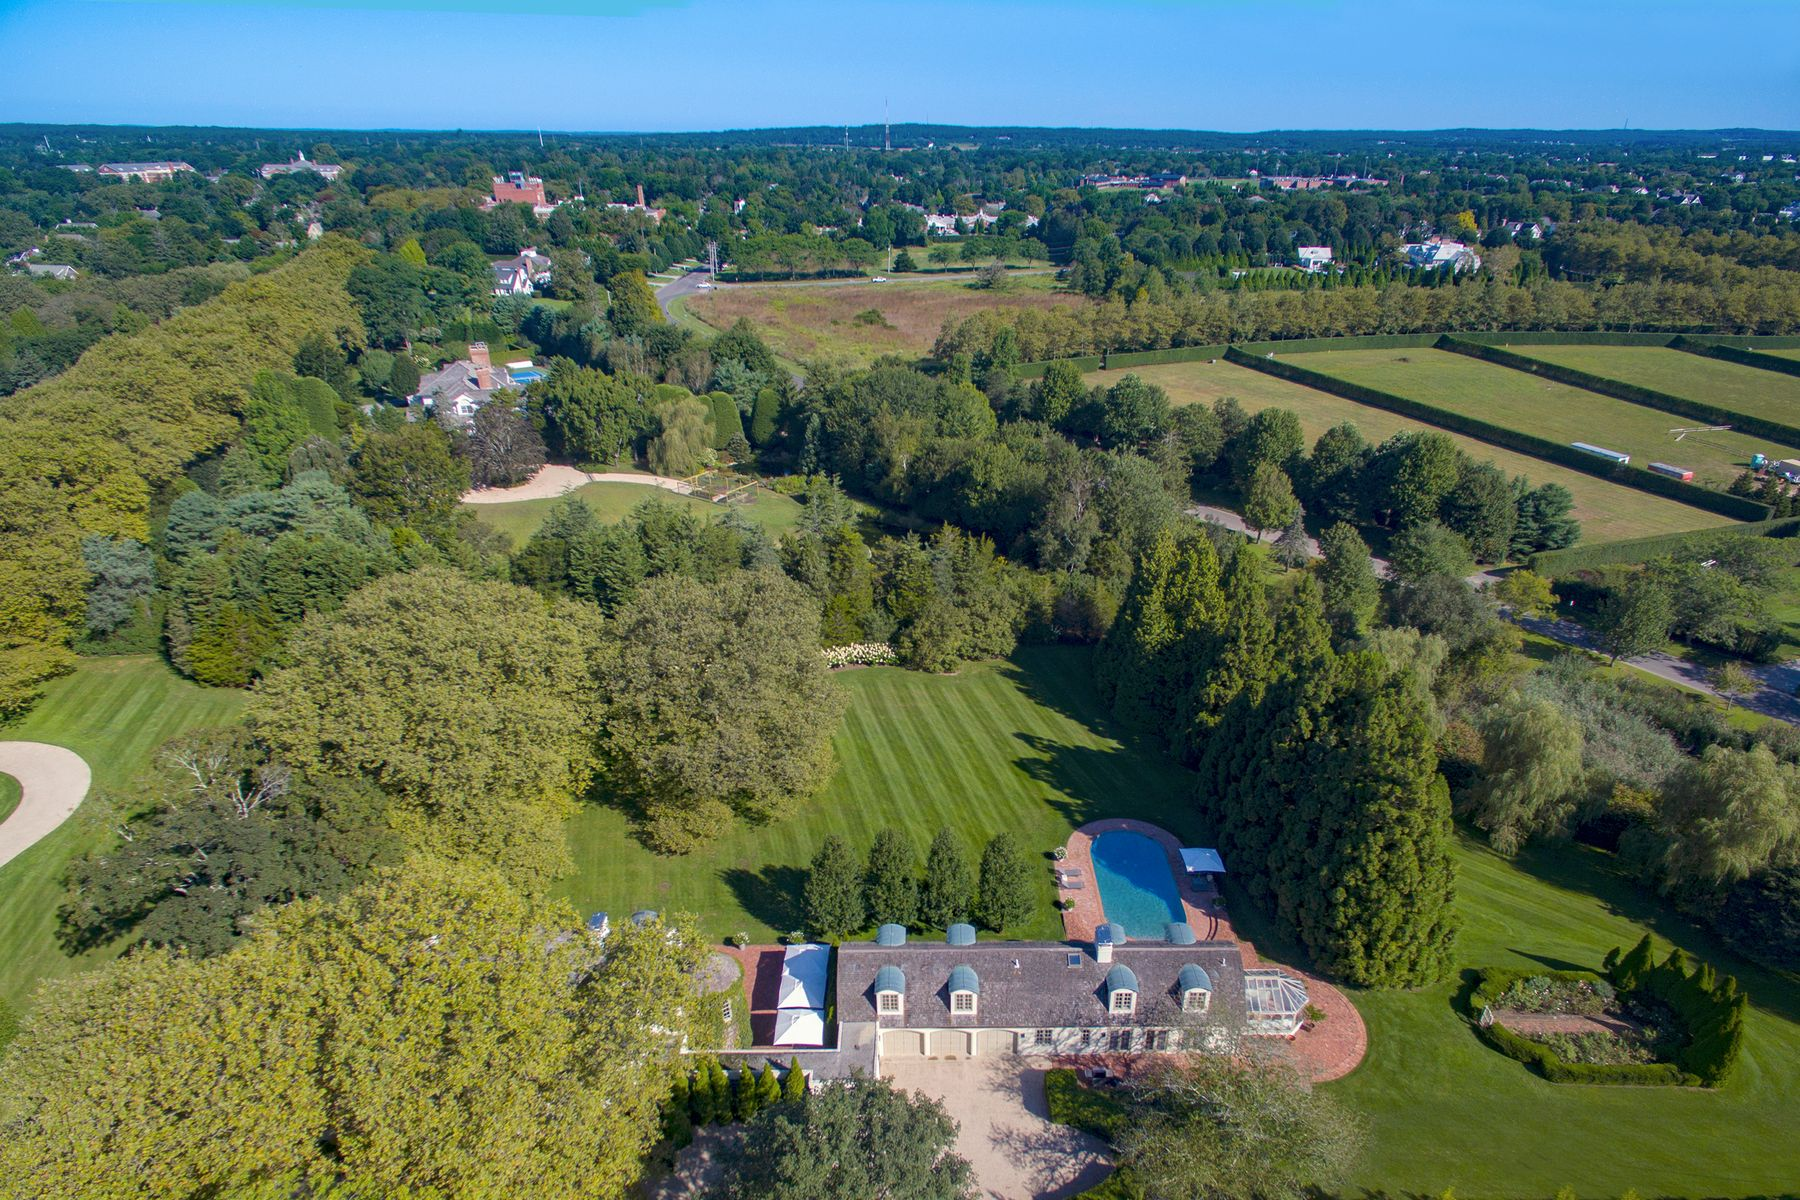 Single Family Homes for Active at Exquisite Landscape on Wyandanch Lane 80 Wyandanch Lane Southampton, New York 11968 United States